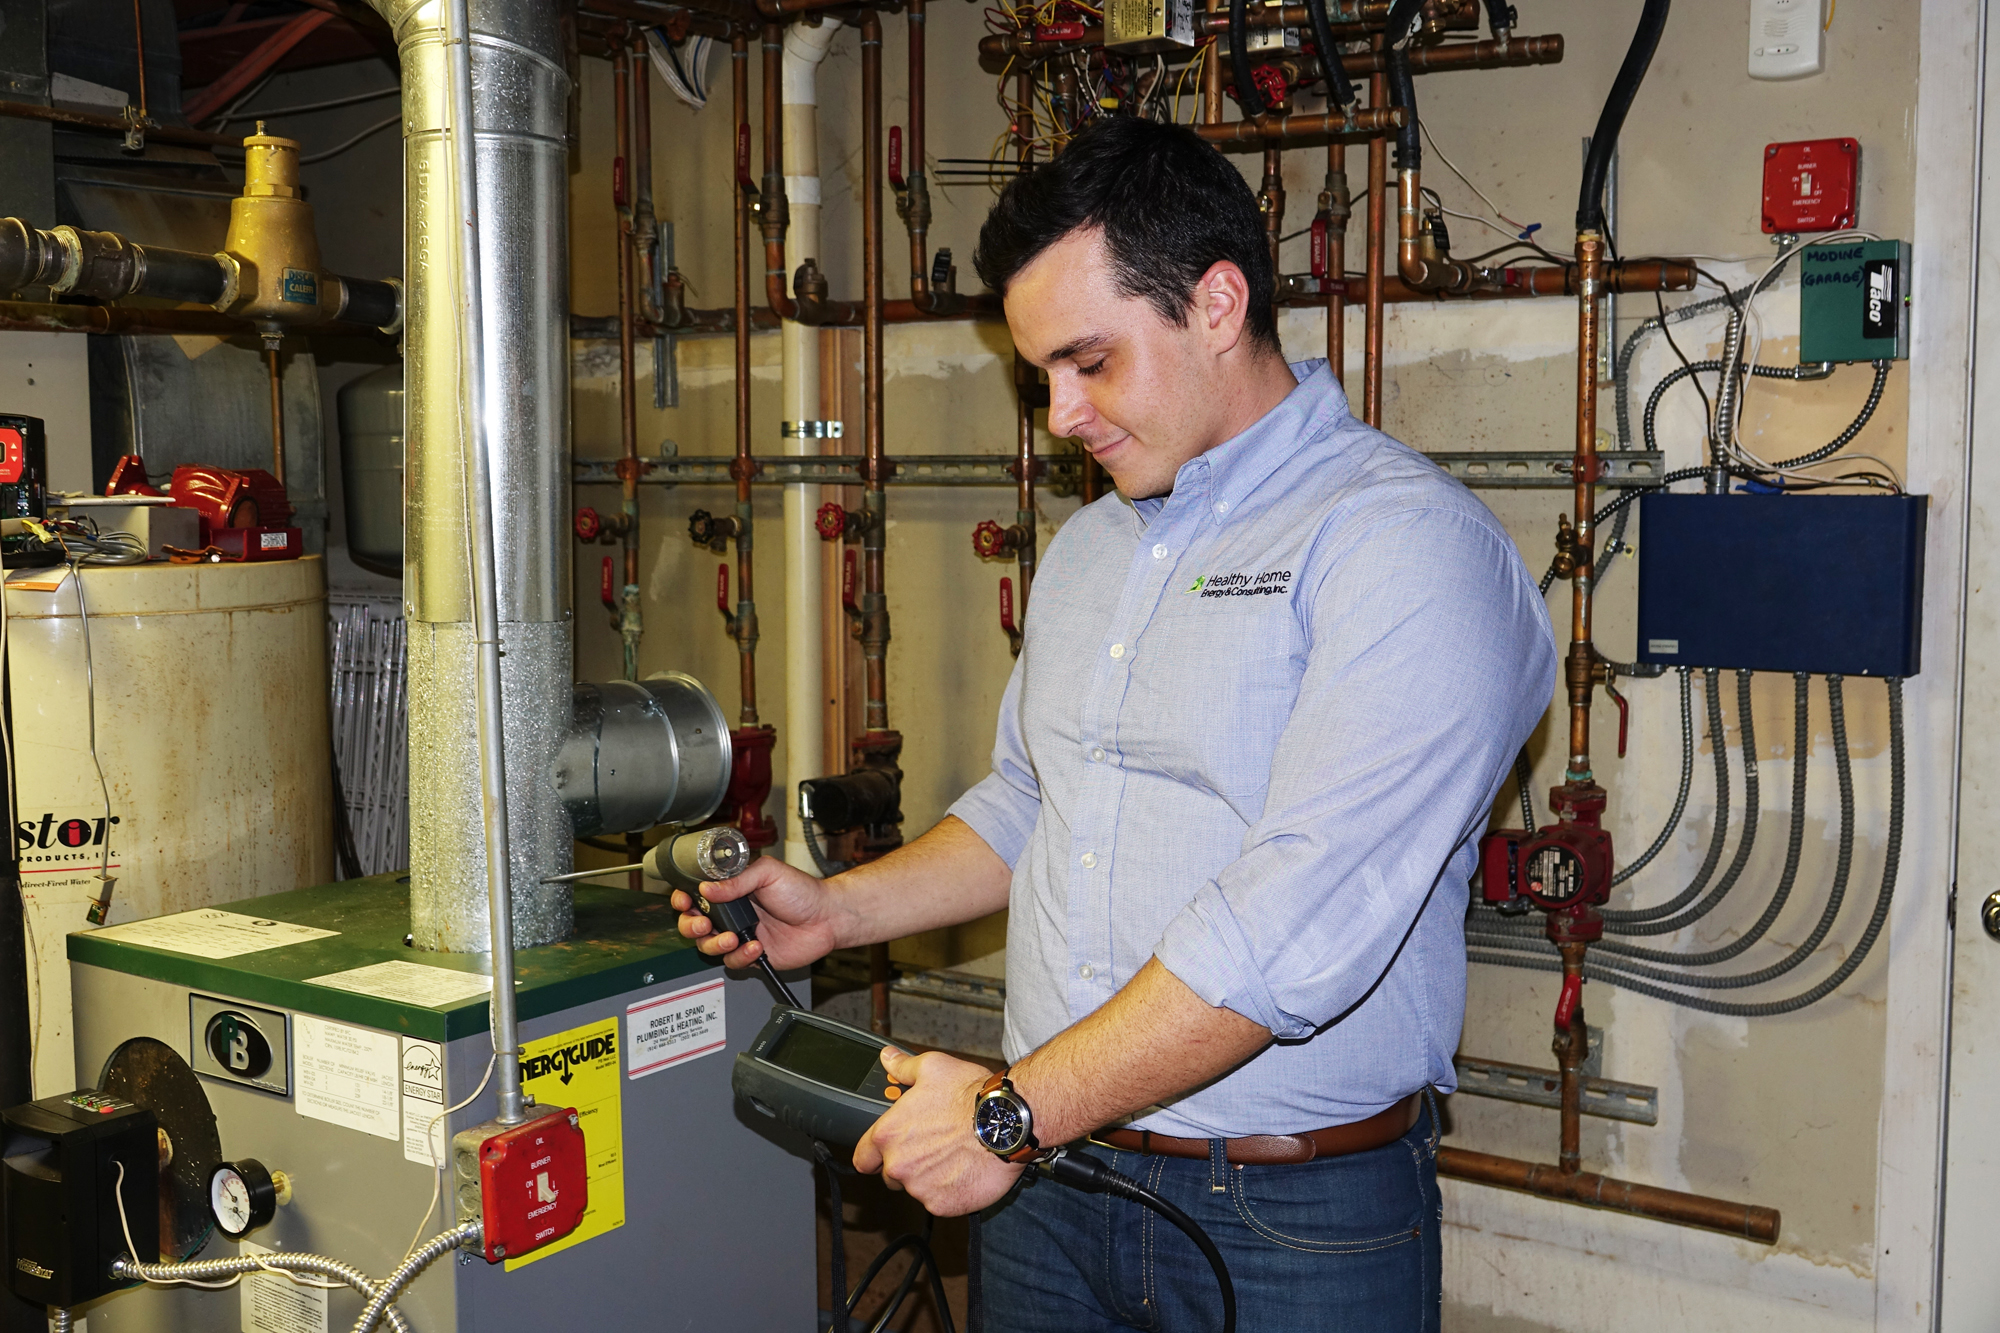 Healthy Home Energy & Consulting